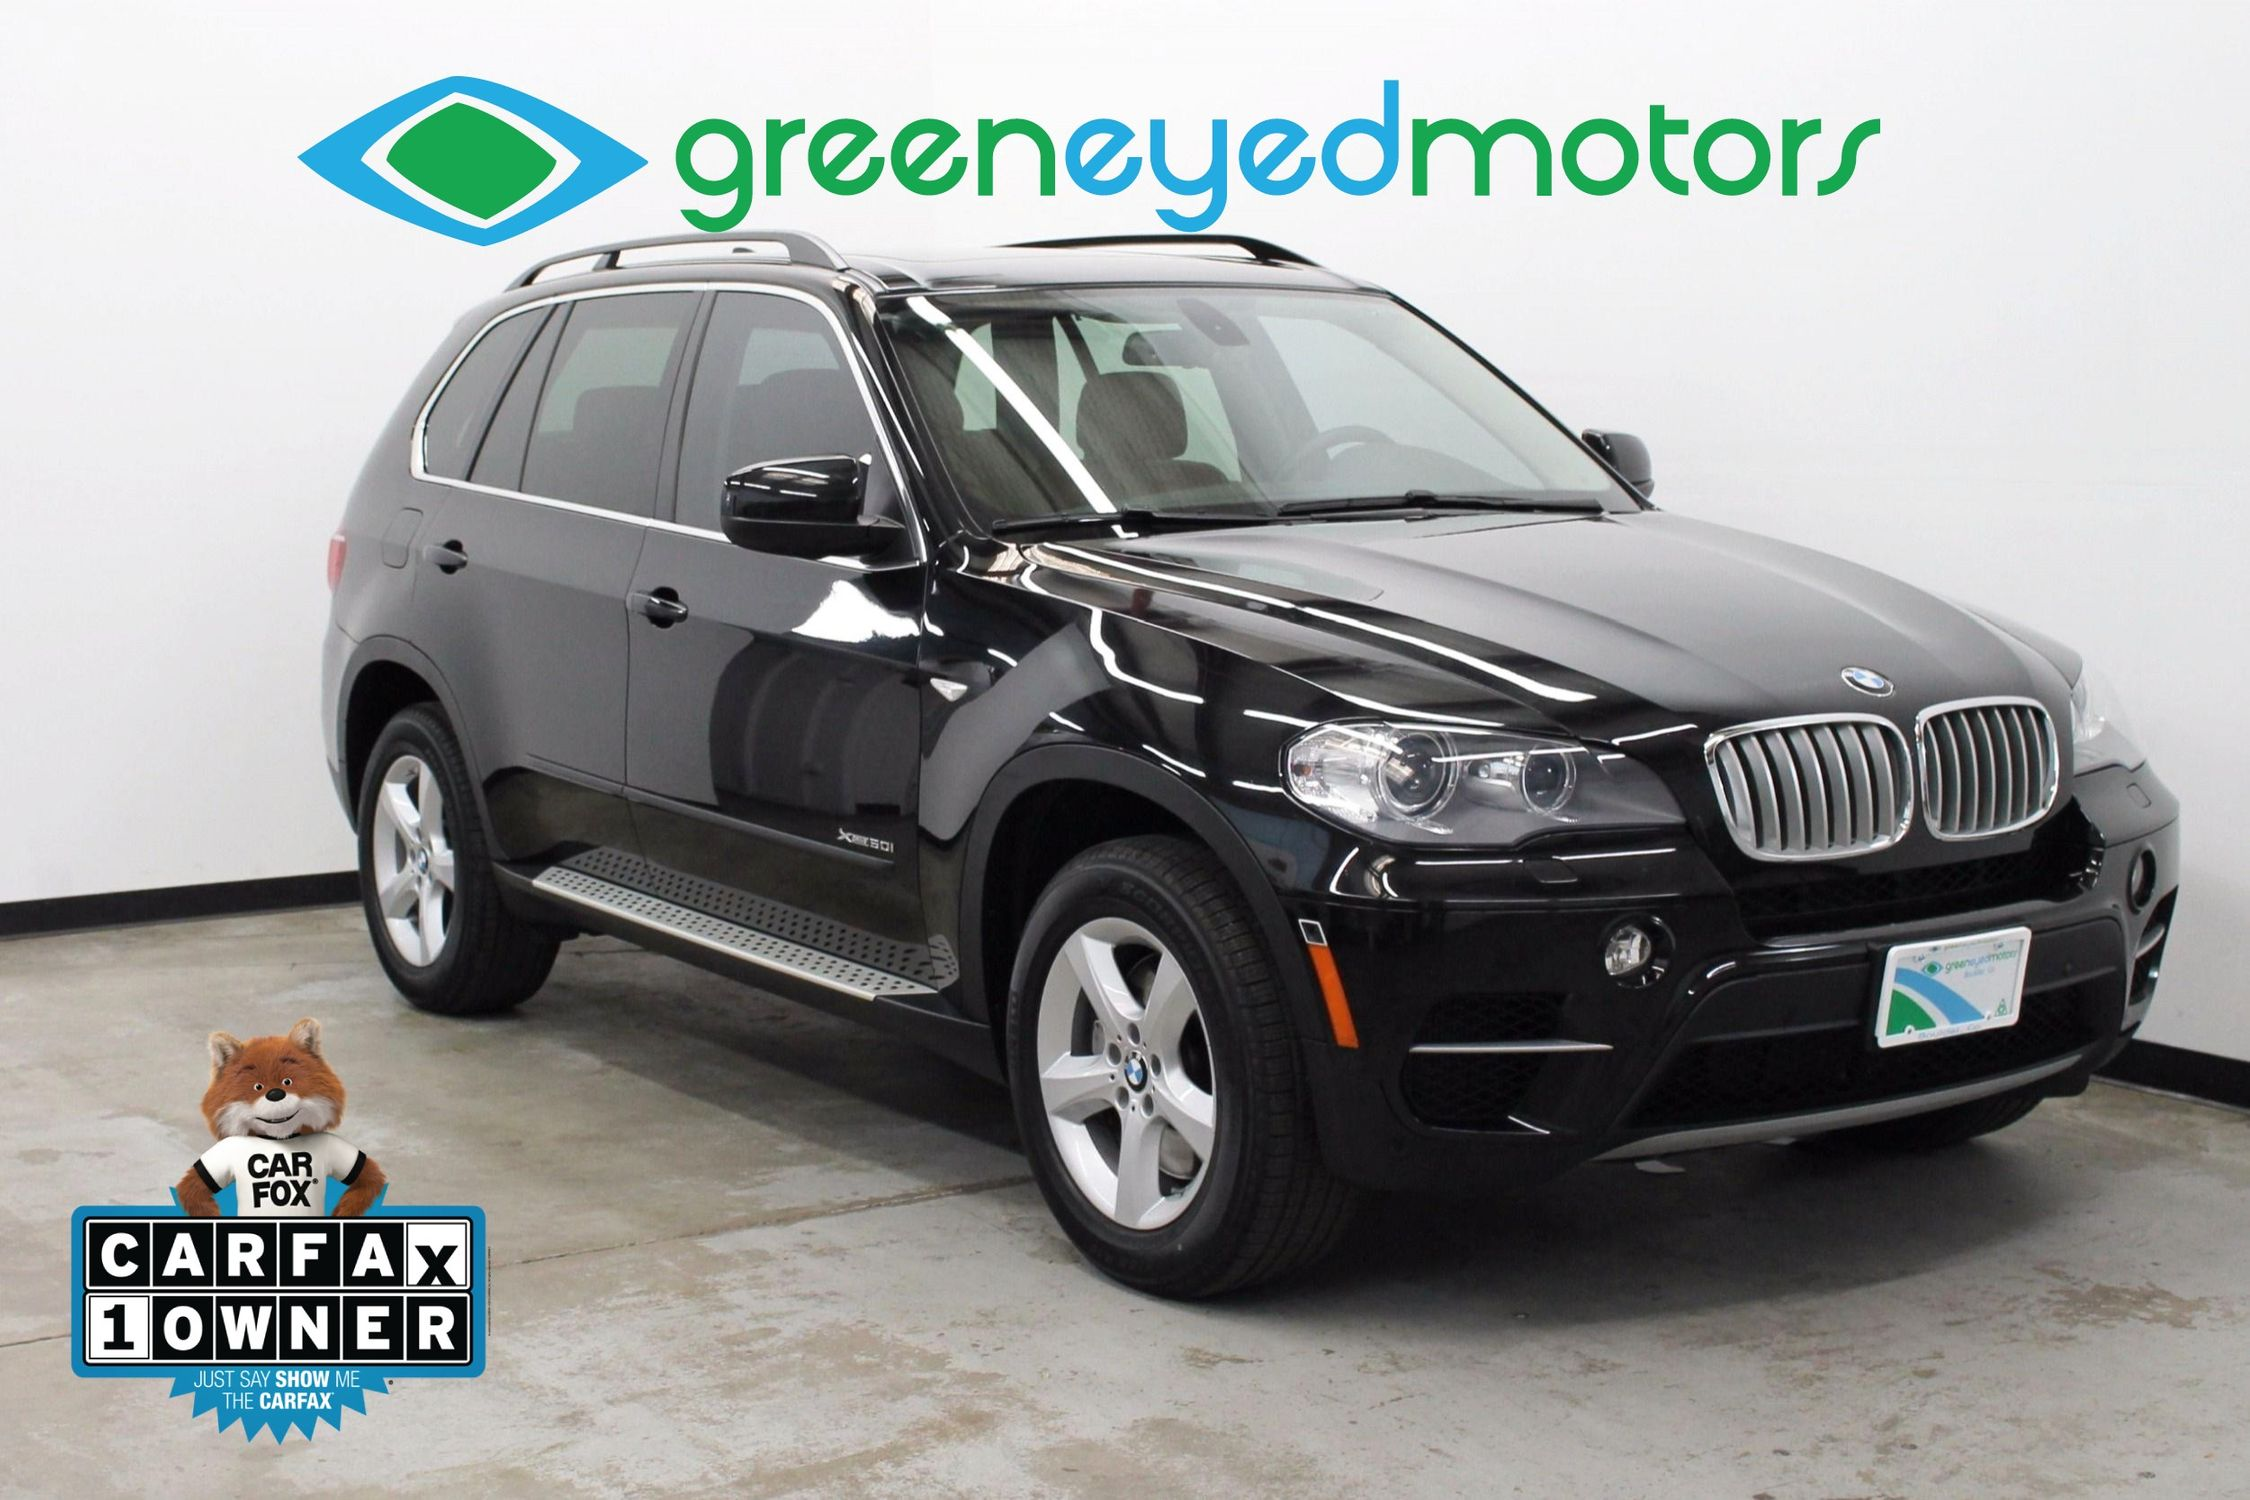 2013 Bmw X5 Xdrive50i Green Eyed Motors Trailer Wiring